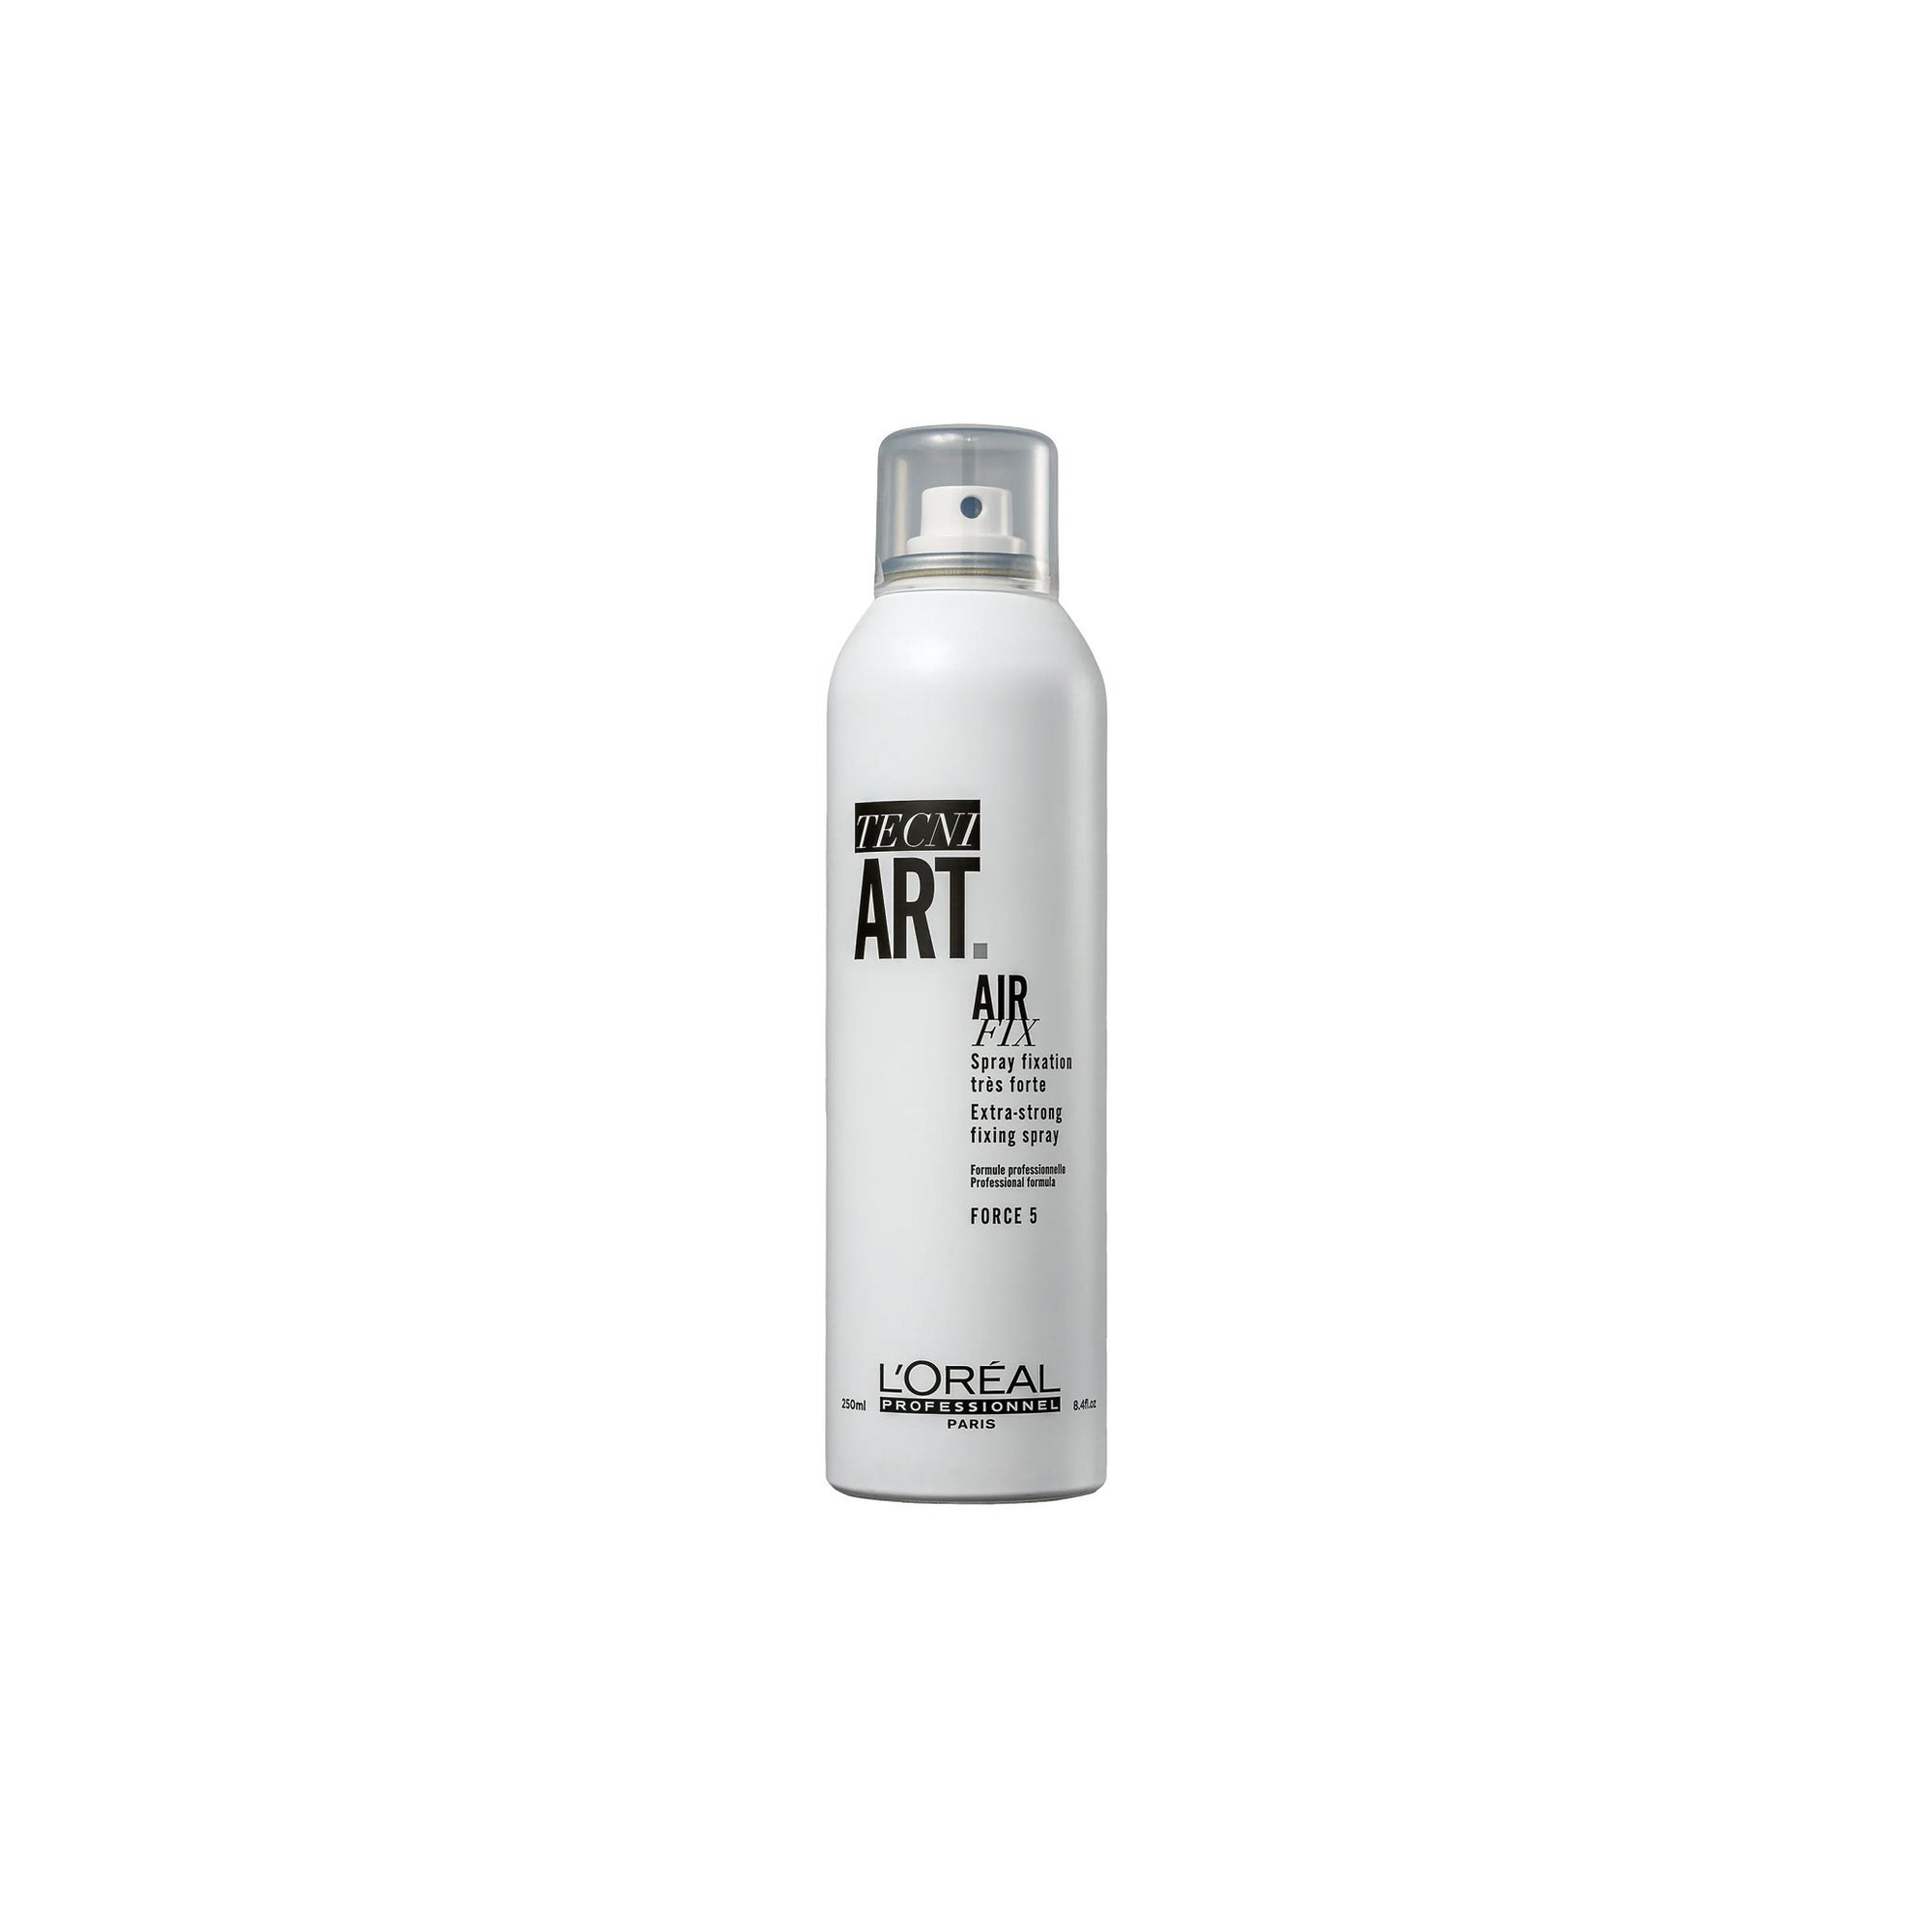 L'Oreal Professional Tecni Art Air Fix Firm Hold Spray 250ml